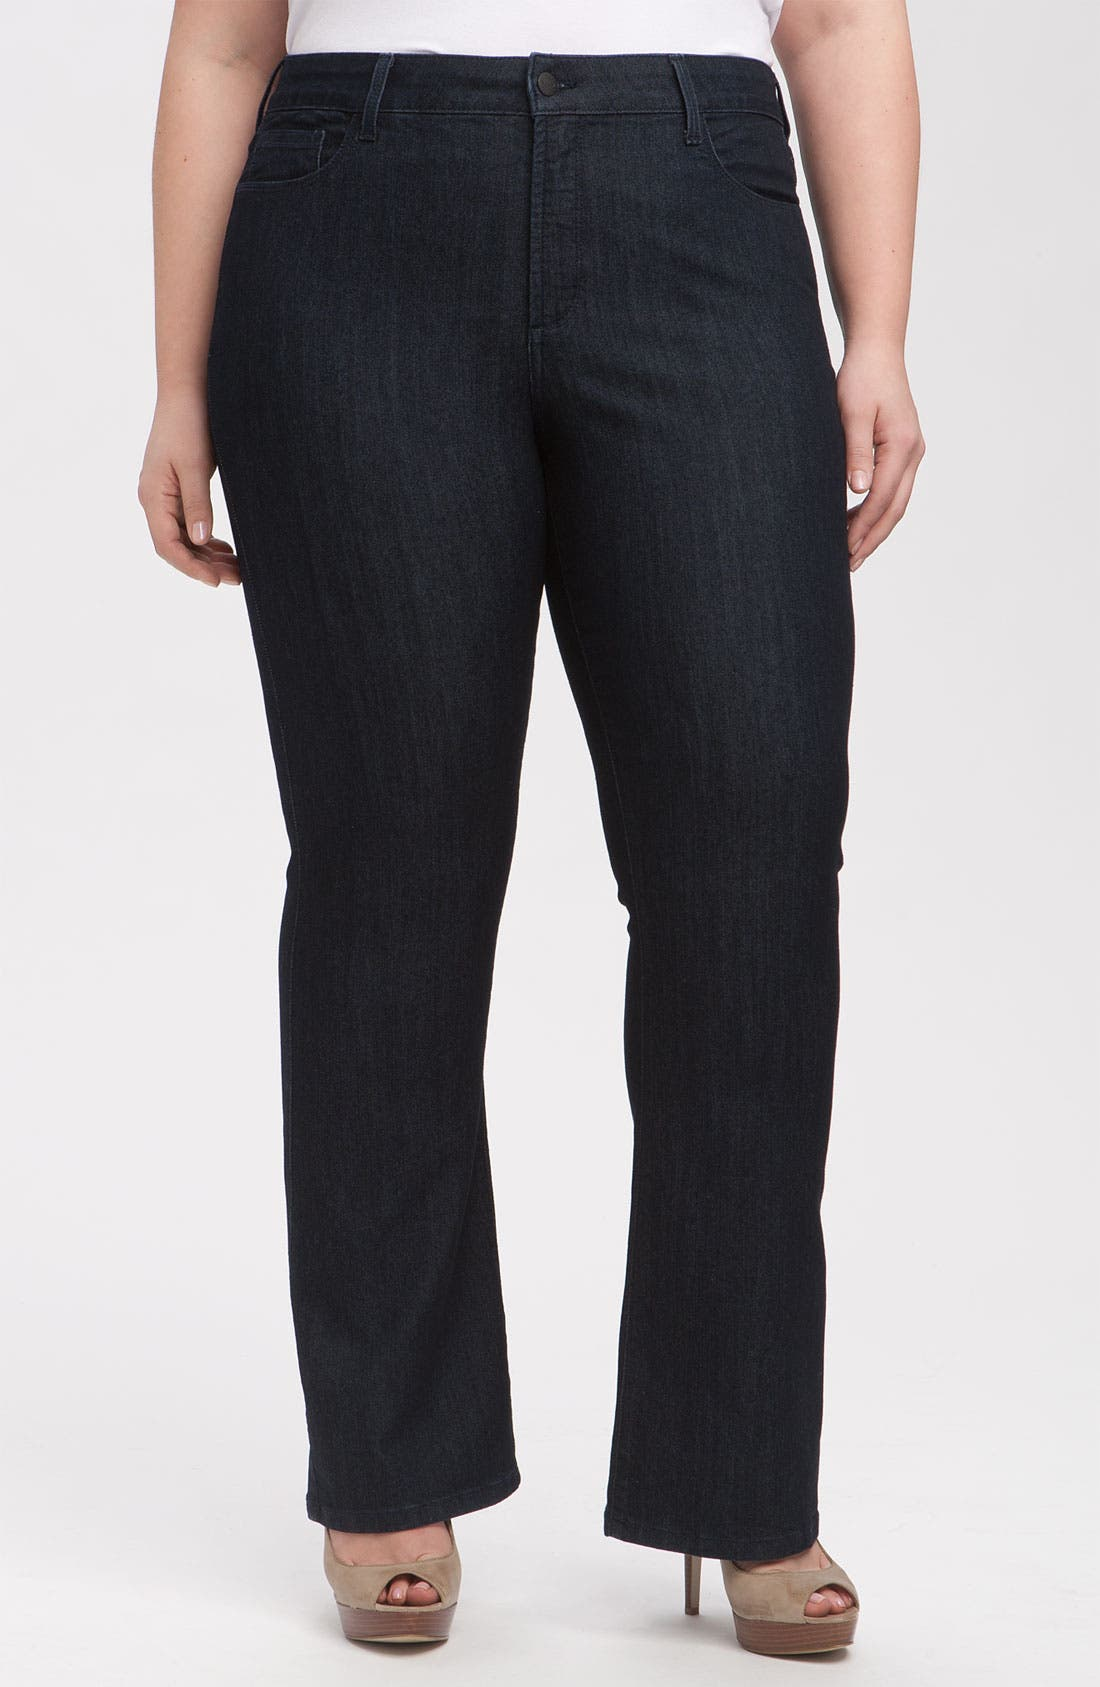 Alternate Image 1 Selected - NYDJ 'Barbara' Stretch Bootcut Jeans (Dark Enzyme) (Petite Plus Size)